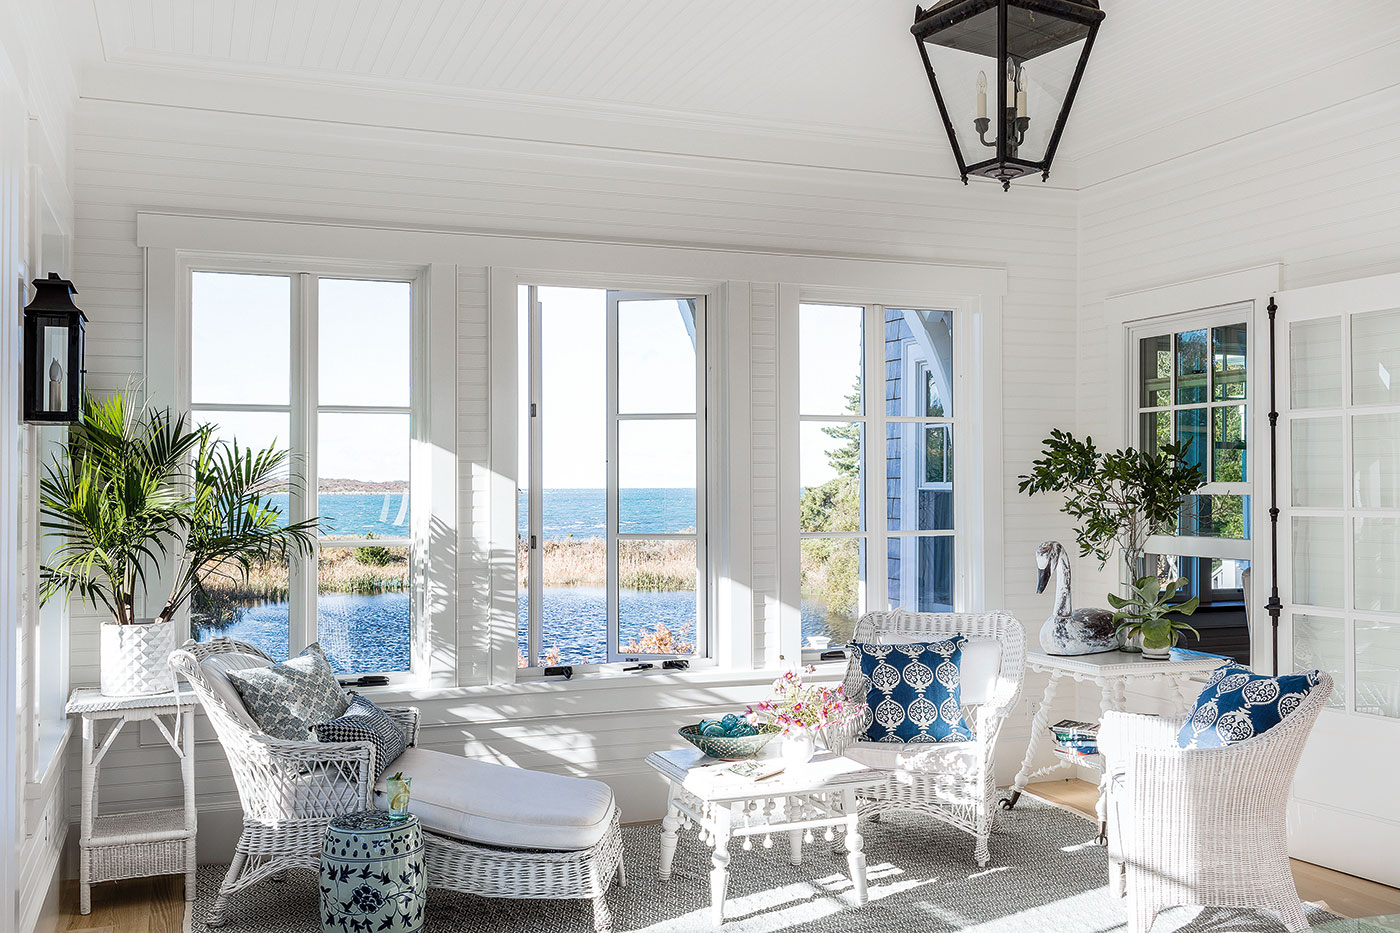 Sun porch of a beloved Cape Cod home and high-end renovation